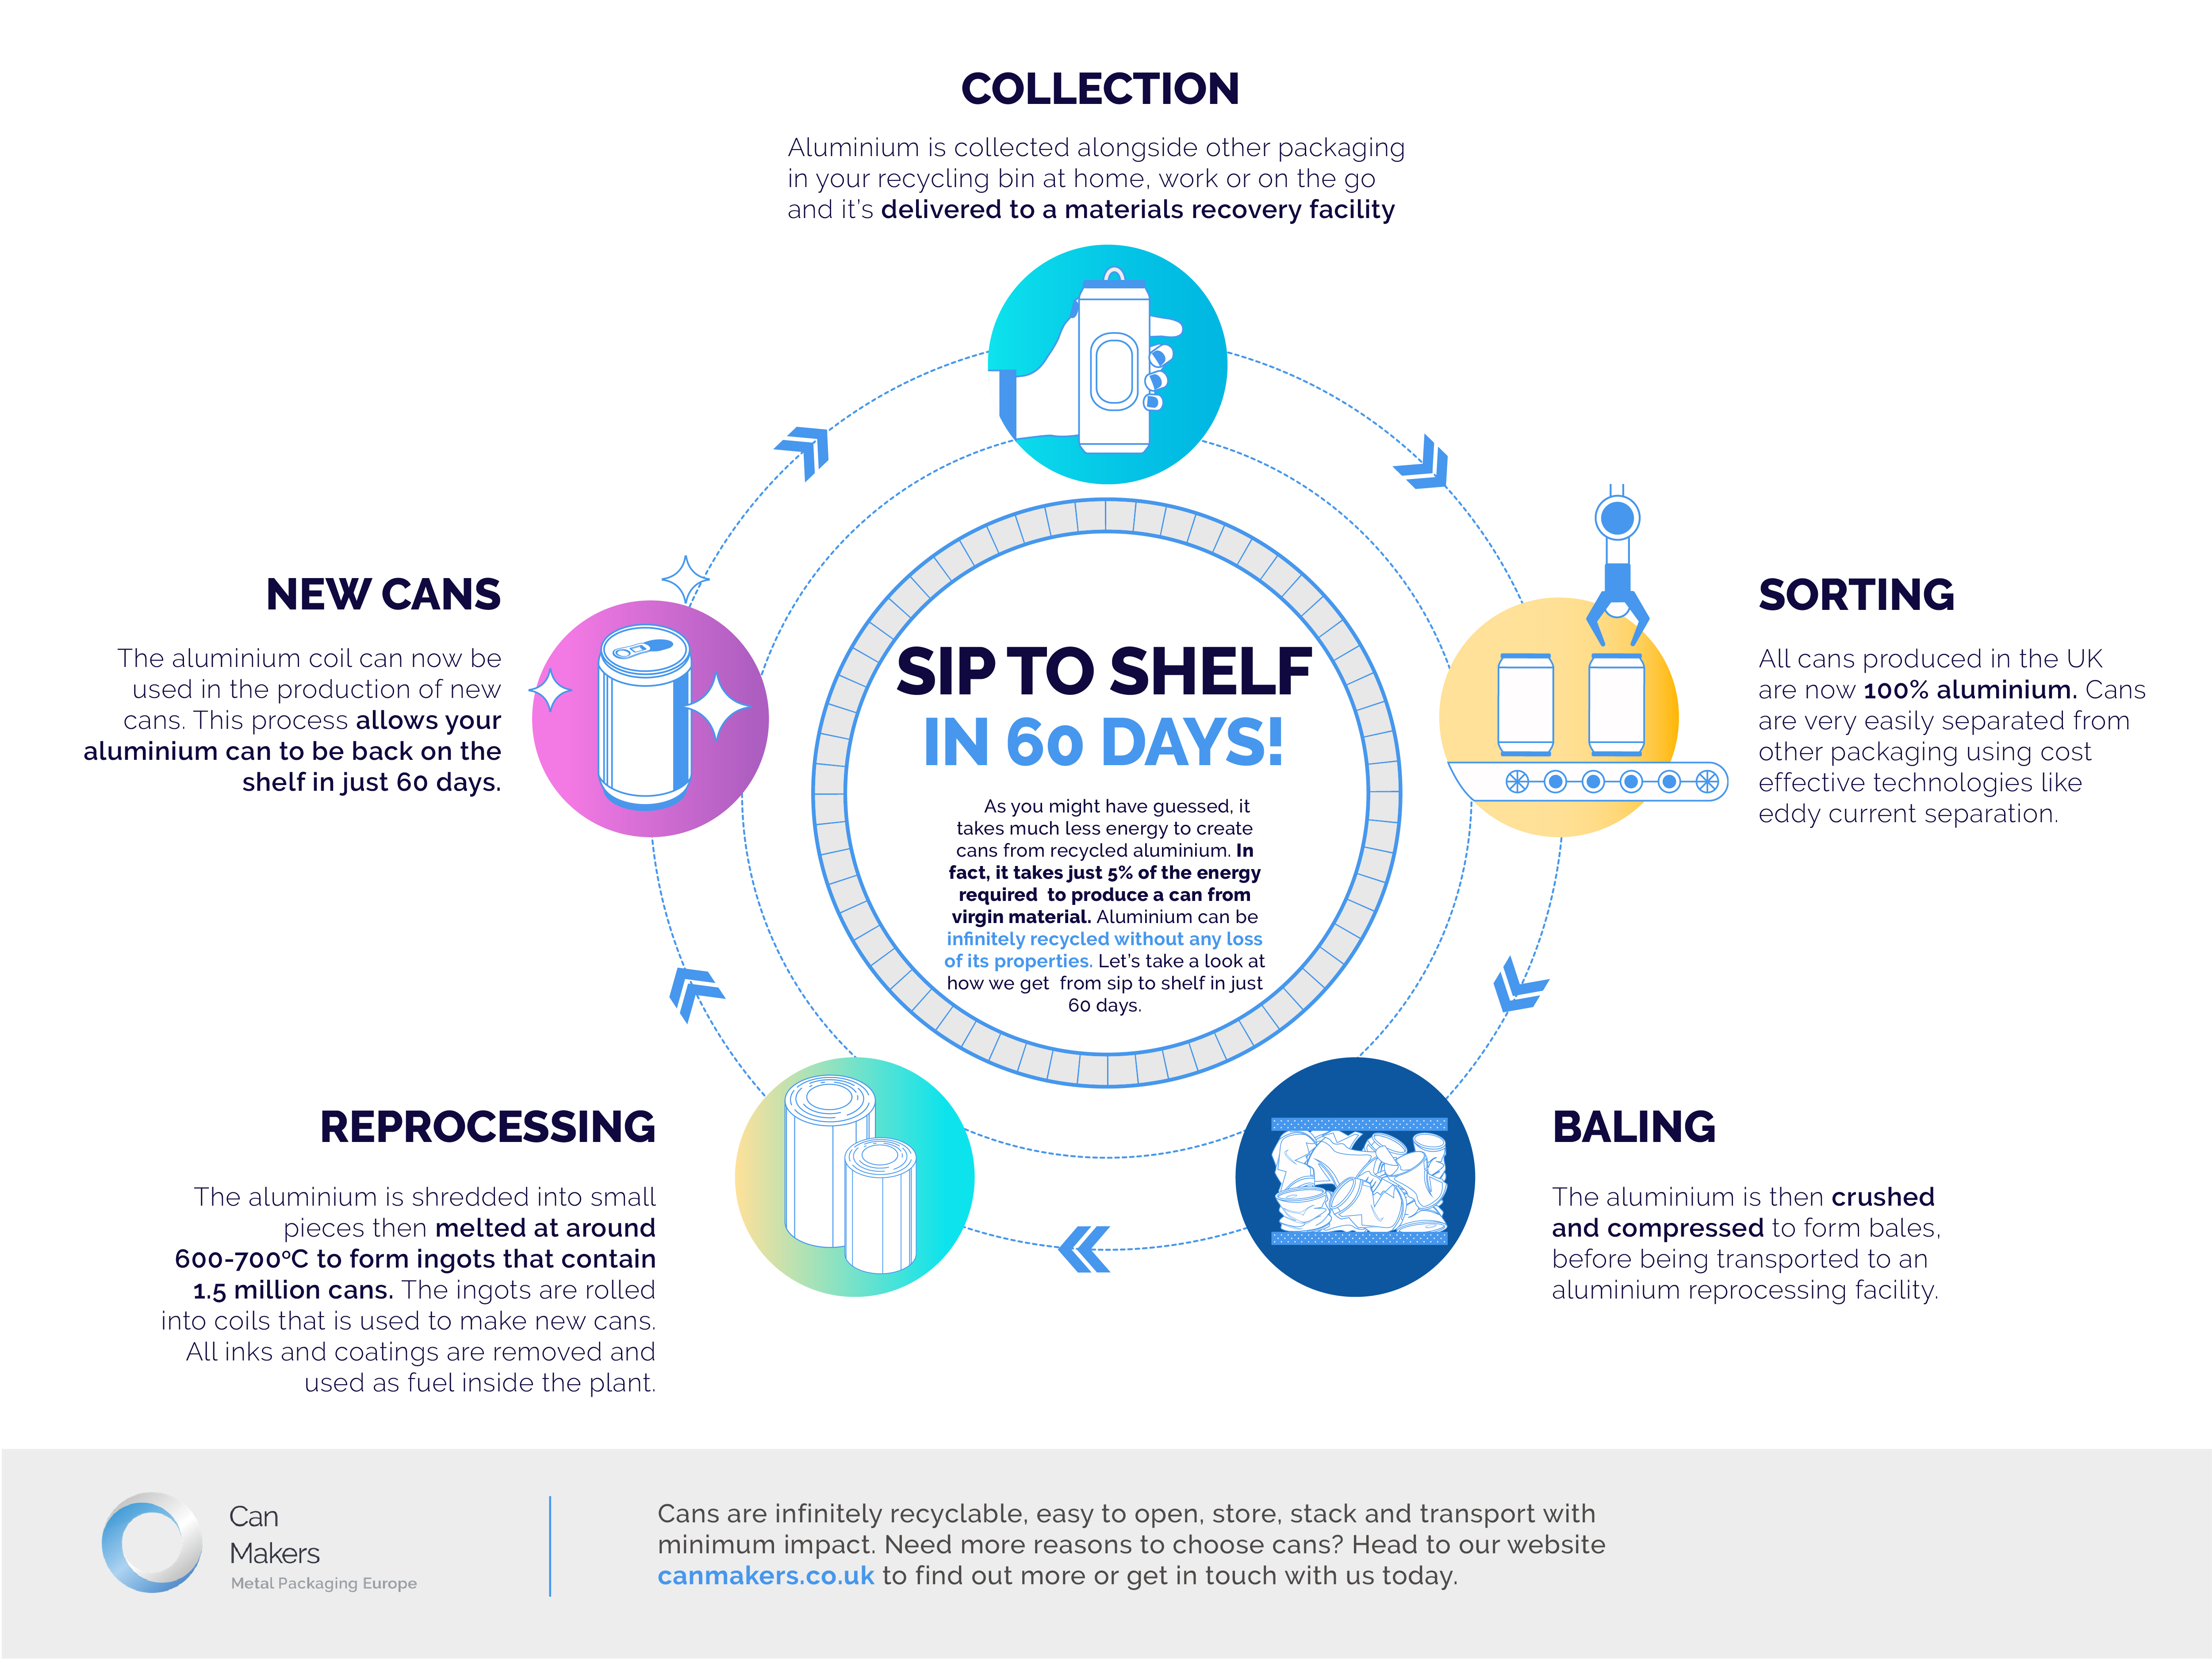 sip to shelf in 60 days